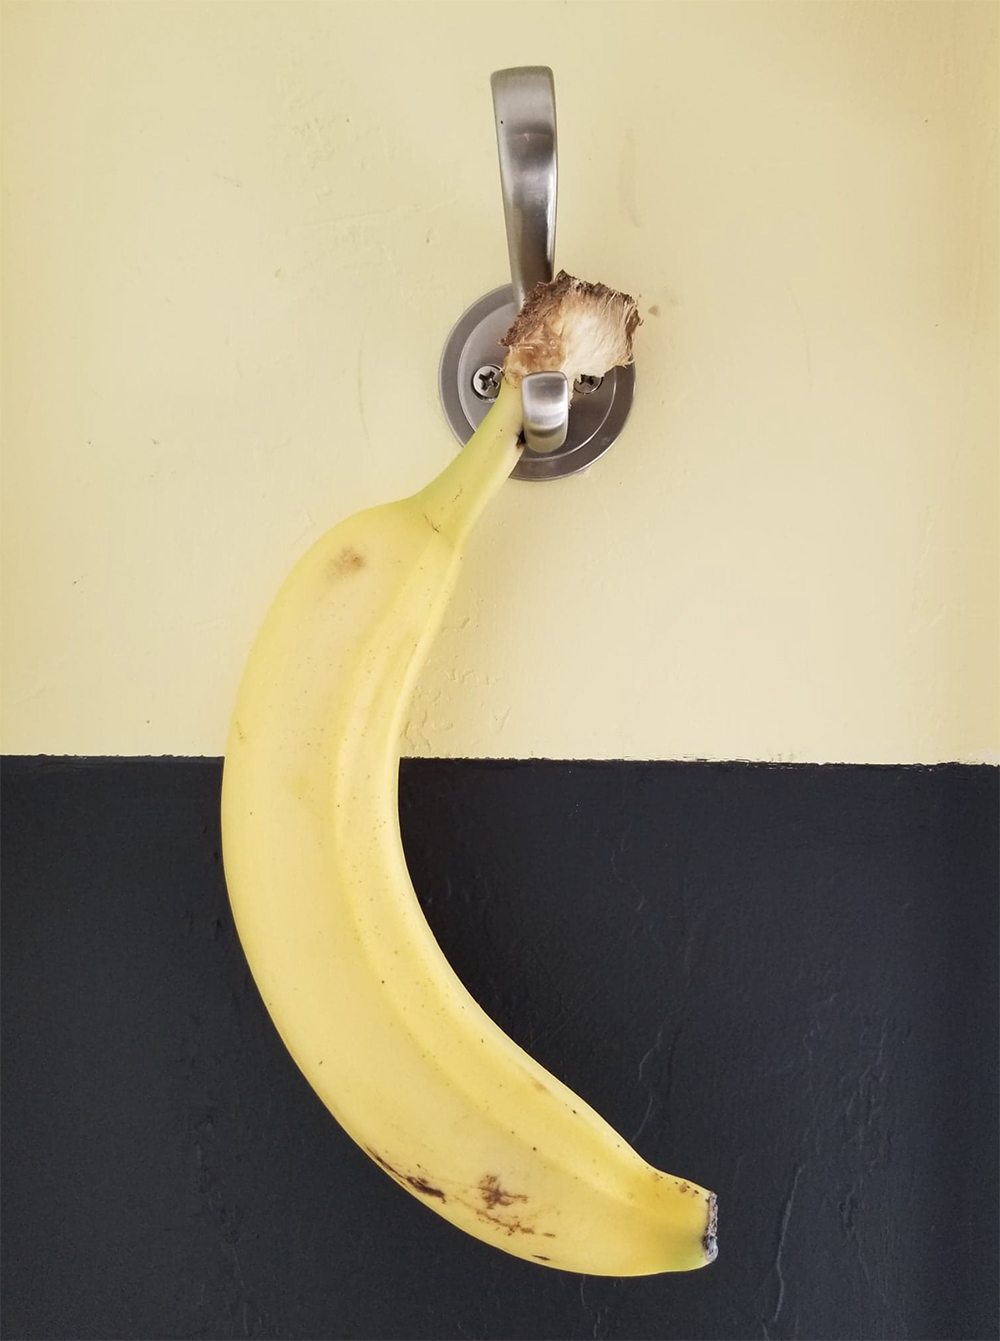 photograph of a banana hanging on a hook against a yellow and black wall